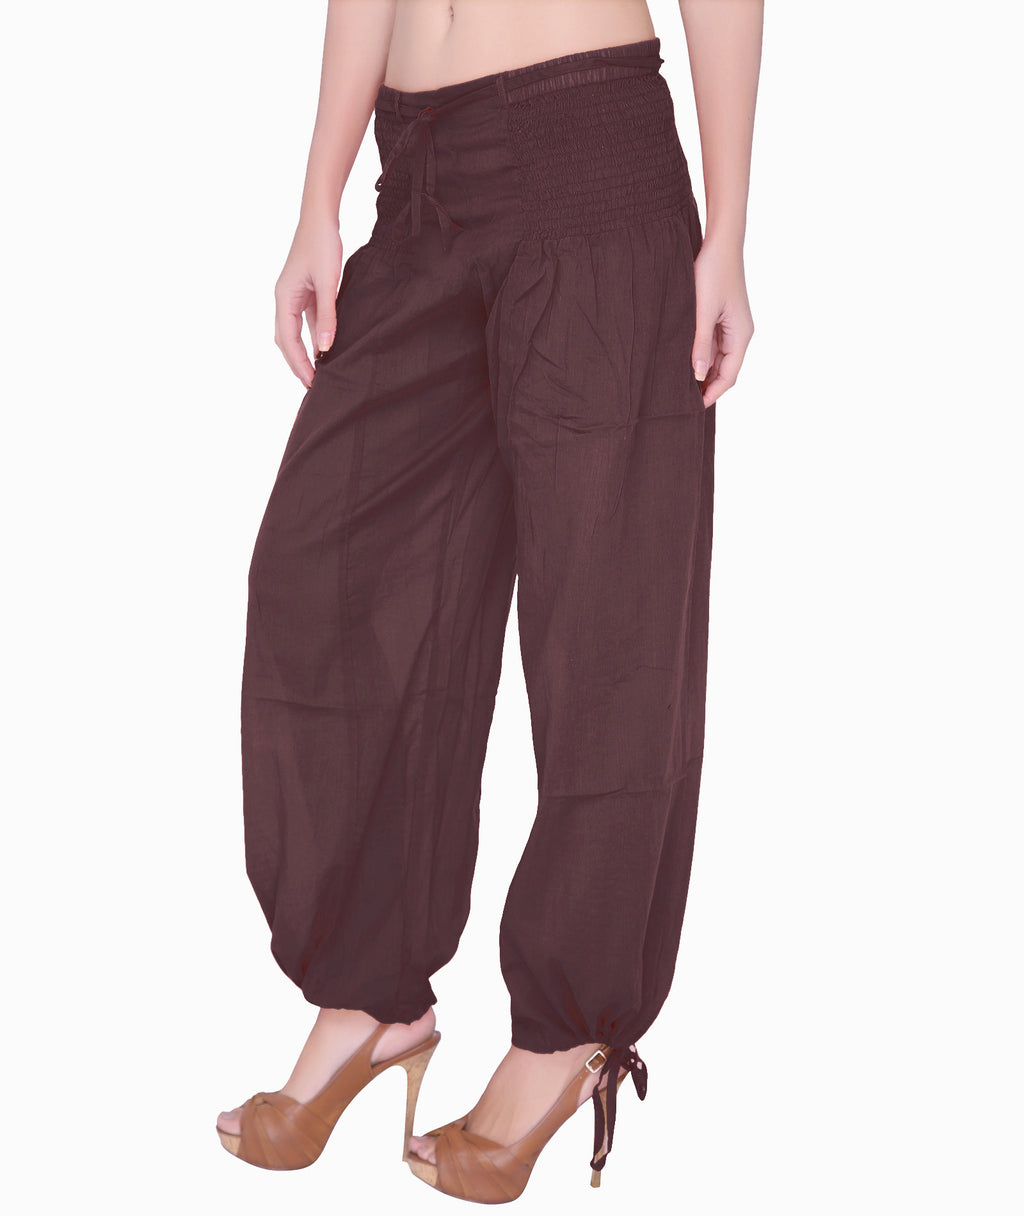 Harem Pants - Brown (Only S)